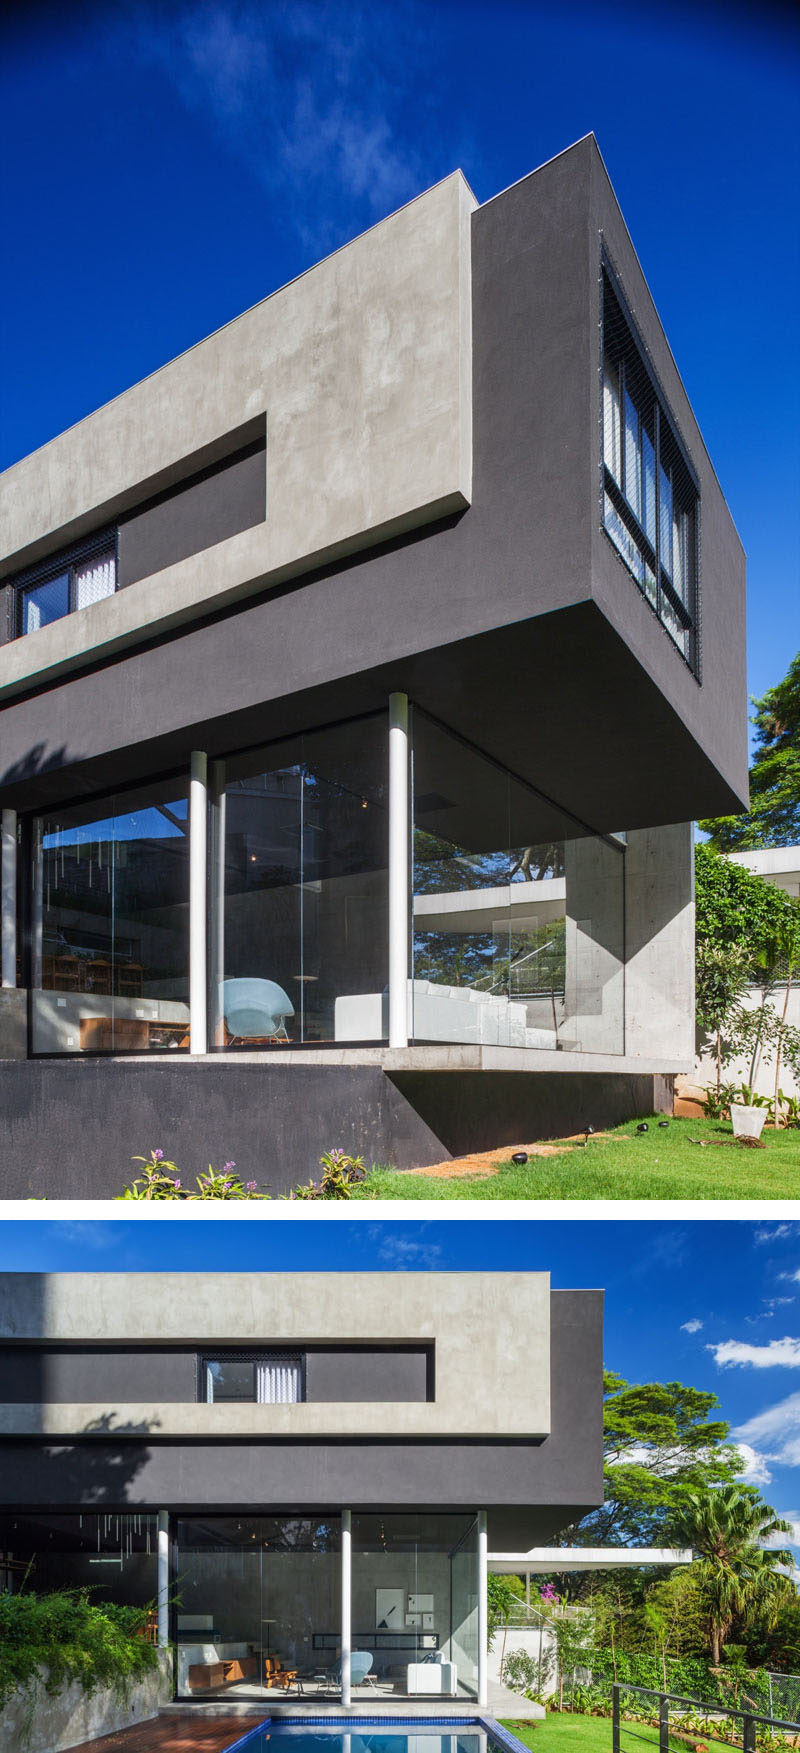 Large glass windows break up the concrete exterior of this modern house and help to support a cantilevered section of the the upper floor of the home.